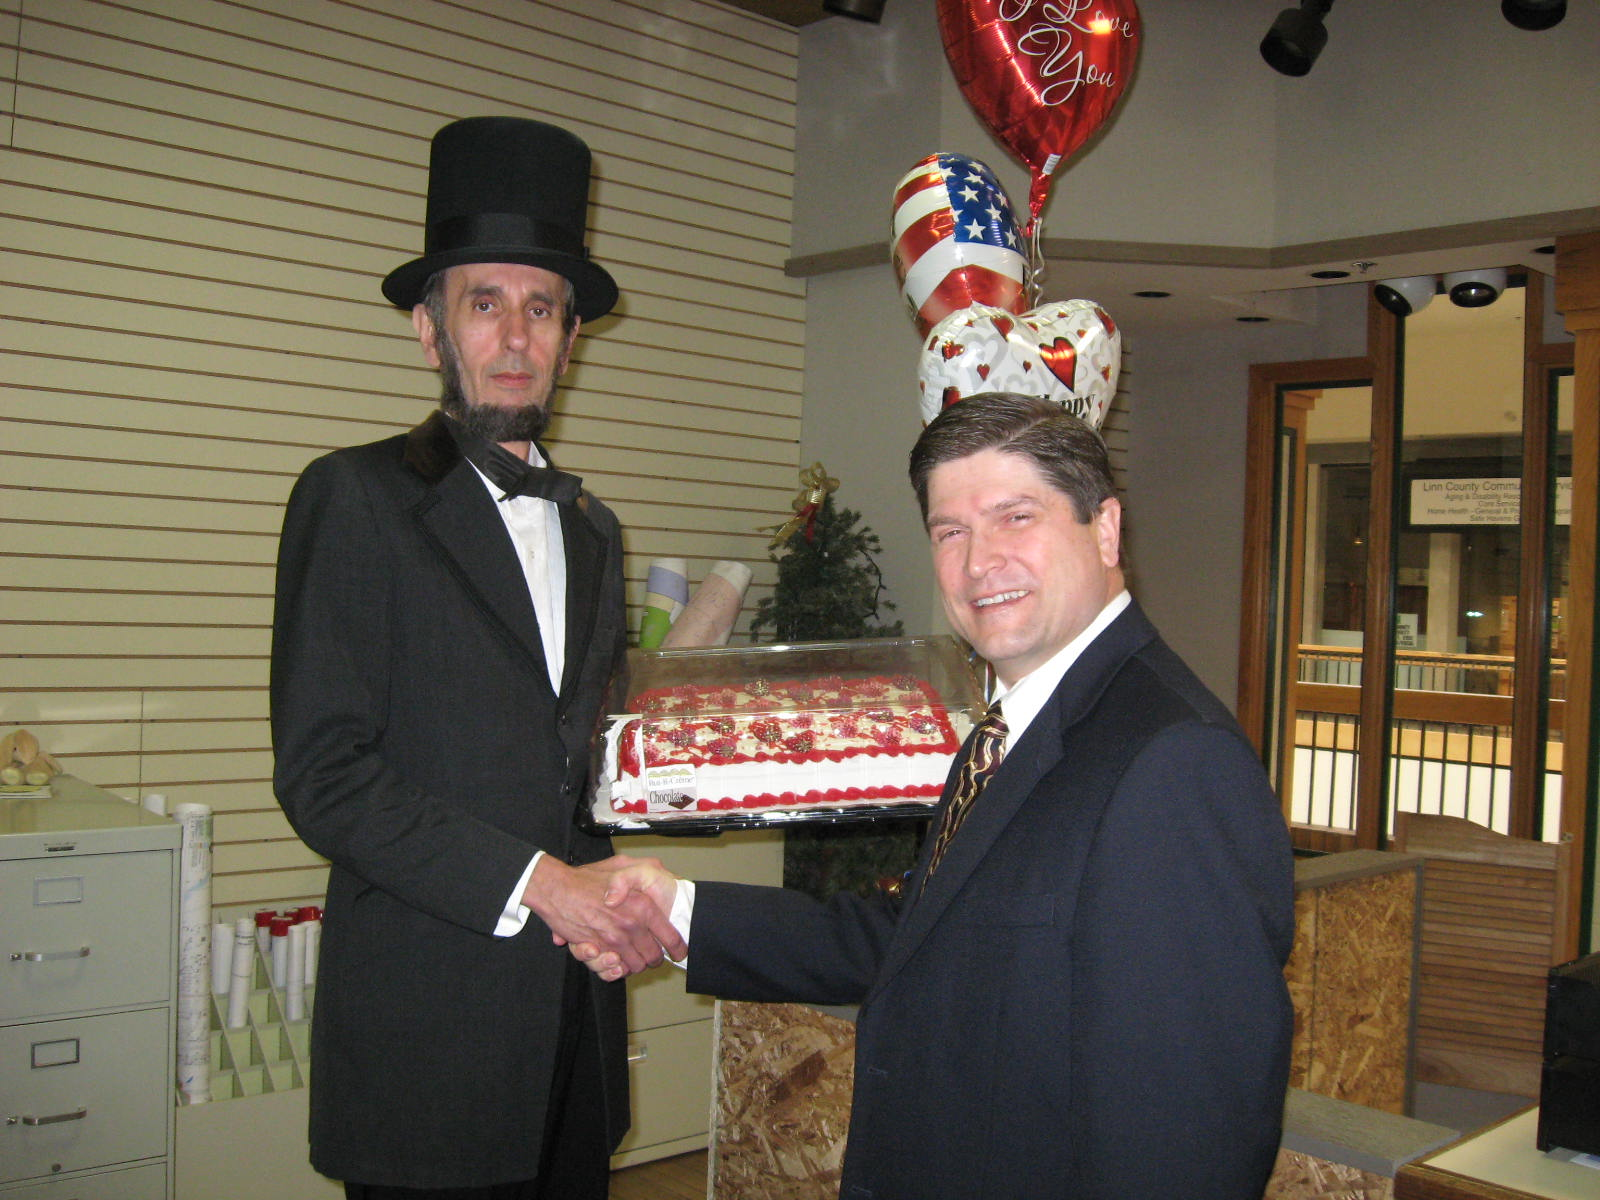 President Lincoln presenting me with a cake for Valentine's Day